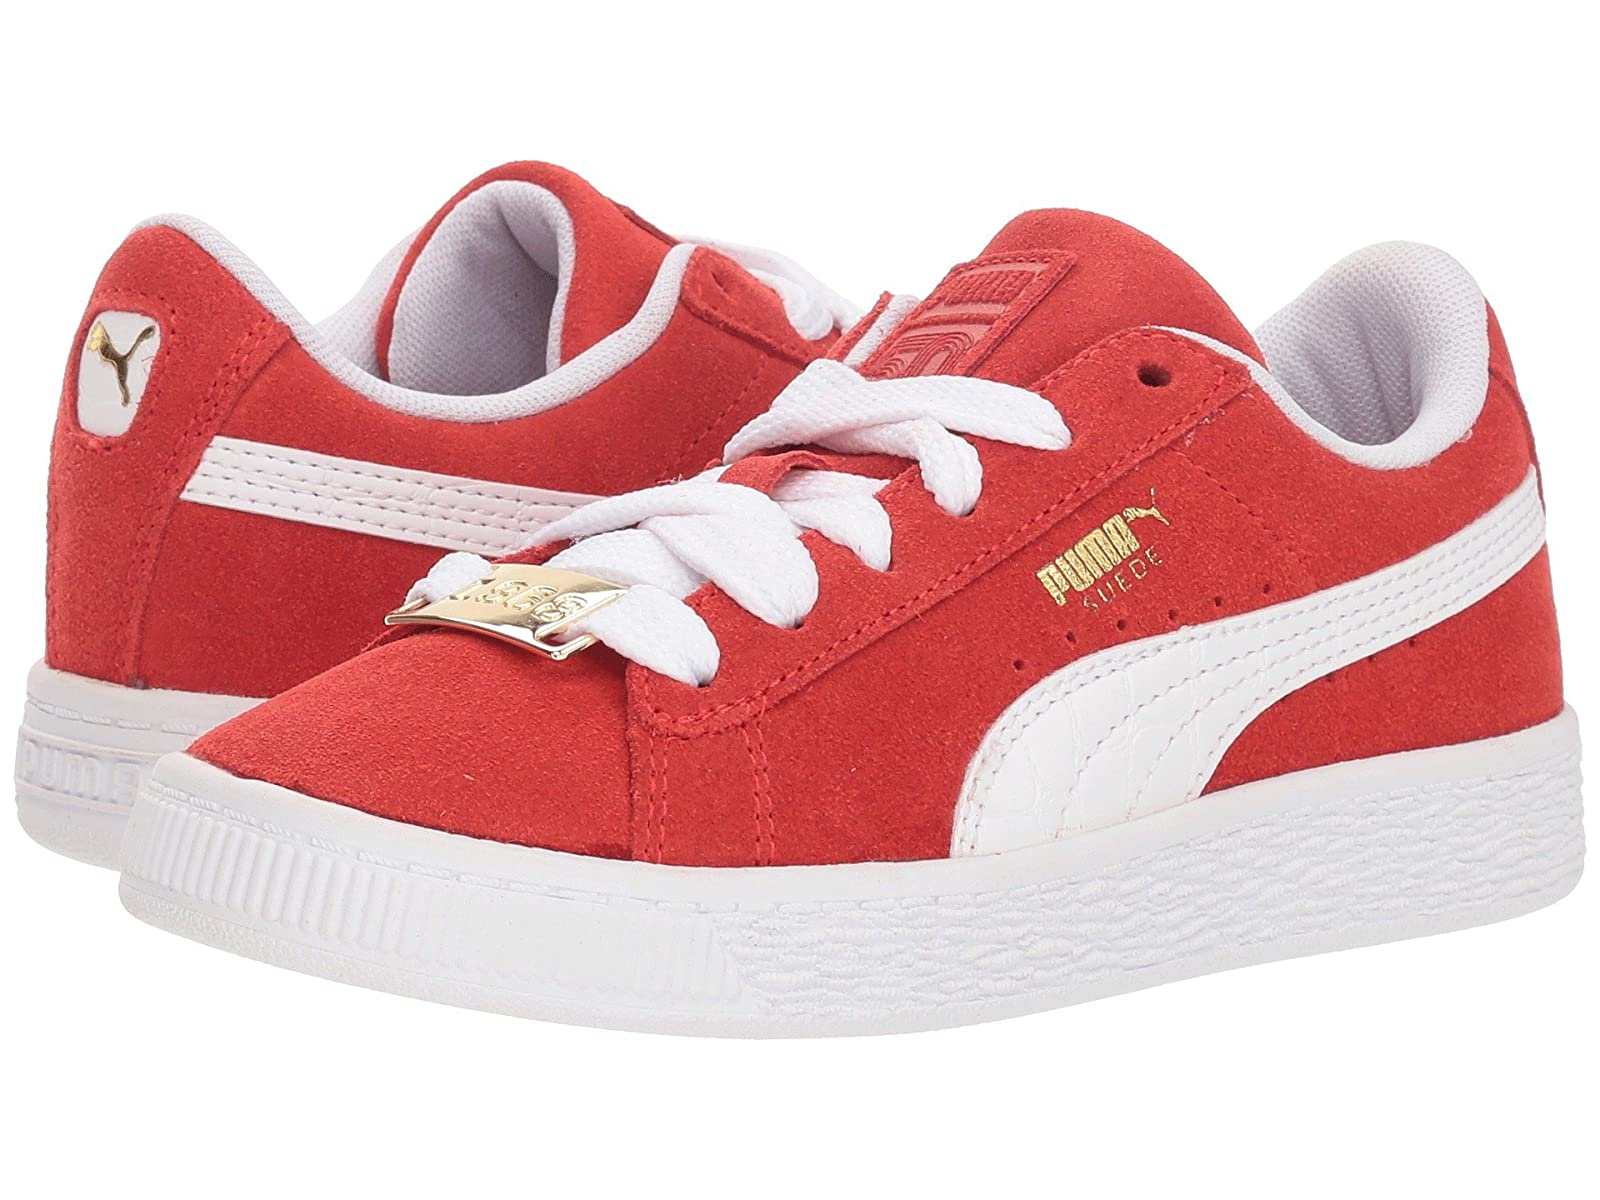 Puma Kids Suede Classic BBOY Fabulous (Little Kid)Cheap and distinctive eye-catching shoes